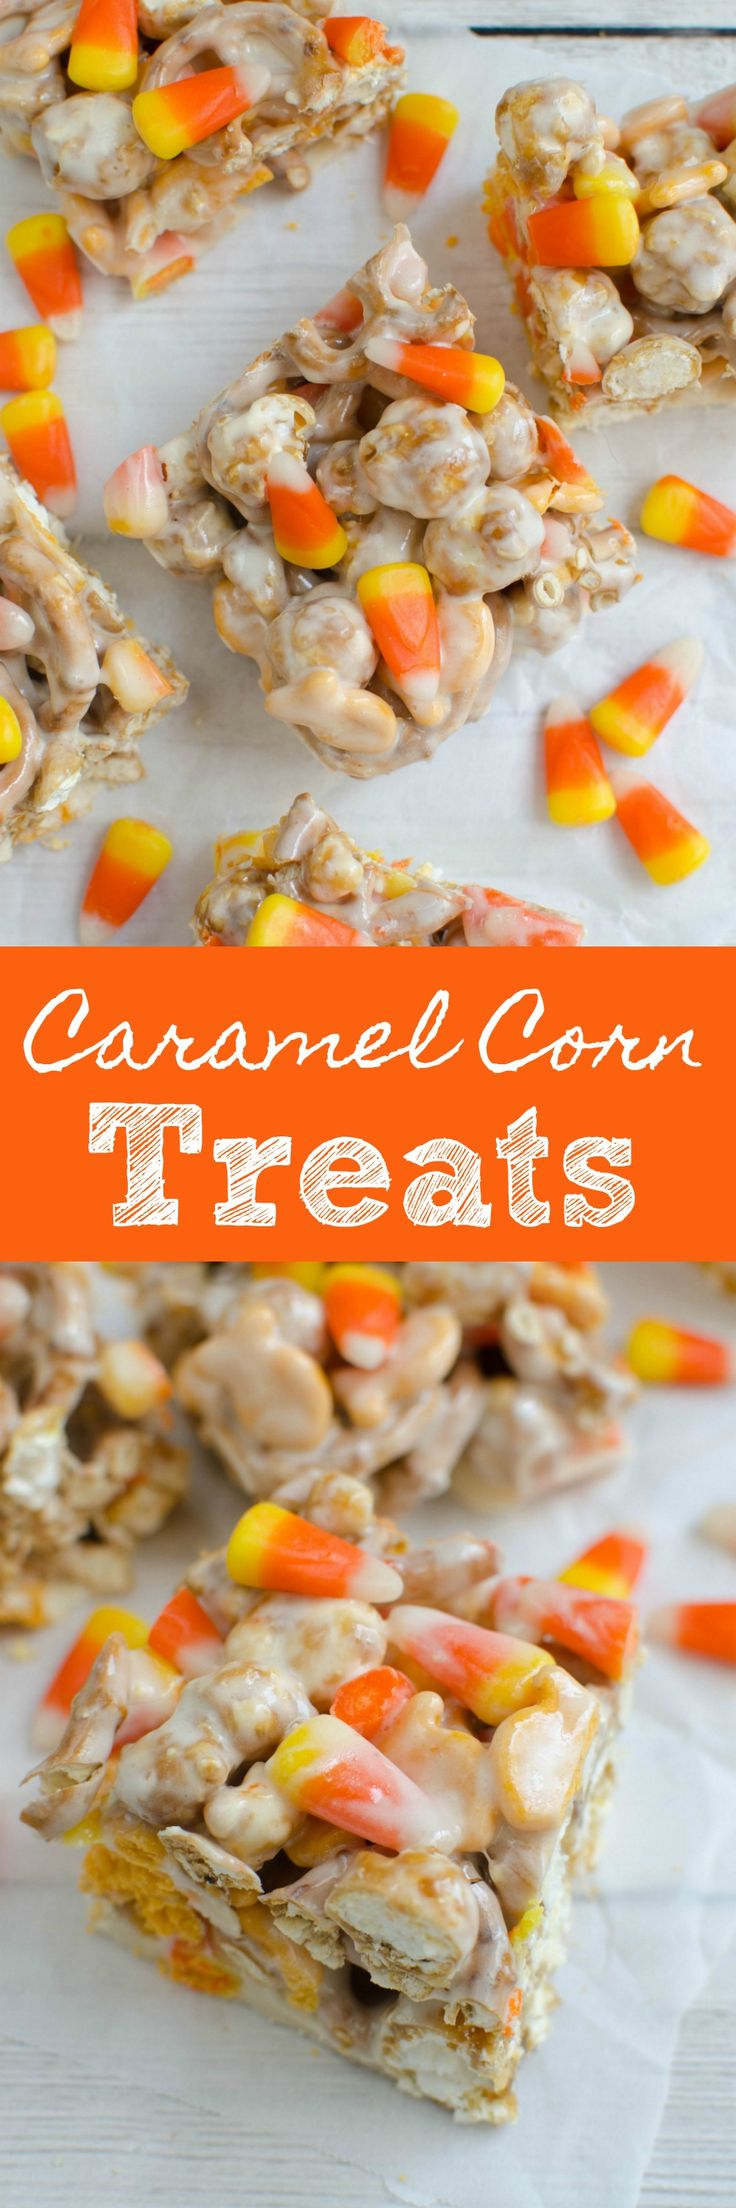 Caramel Corn Treats. #autumn #Halloween #Thanksgiving